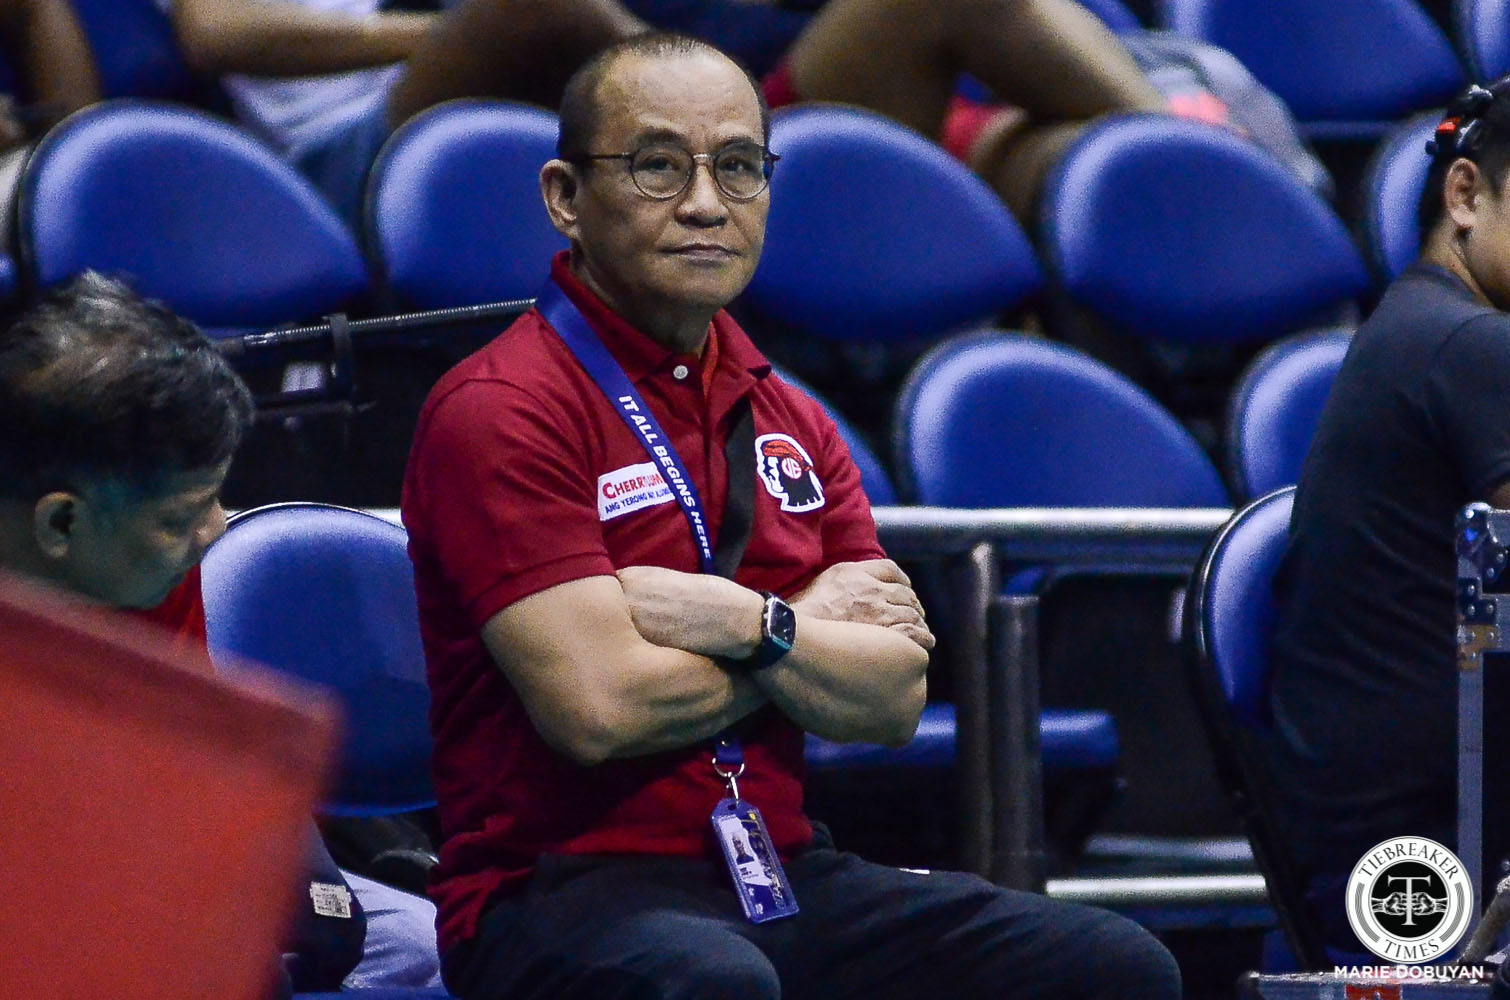 Tiebreaker Times How to solve UE's woes? Chongson says change management style Basketball News UAAP UE  UE Men's Basketball UAAP Season 82 Men's Basketball UAAP Season 82 Lawrence Chongson